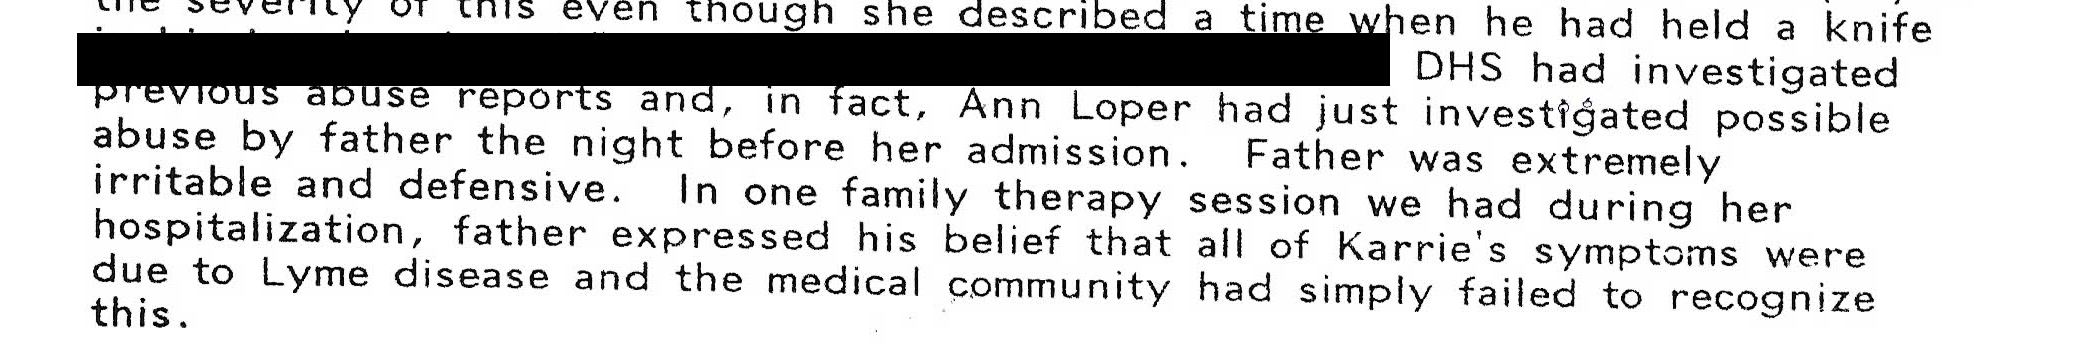 "scan from medical record stating, ""DHS had investigated previous abuse reports and, in fact, Ann Loper had just investigated possible abuse by father the night before her admission."""